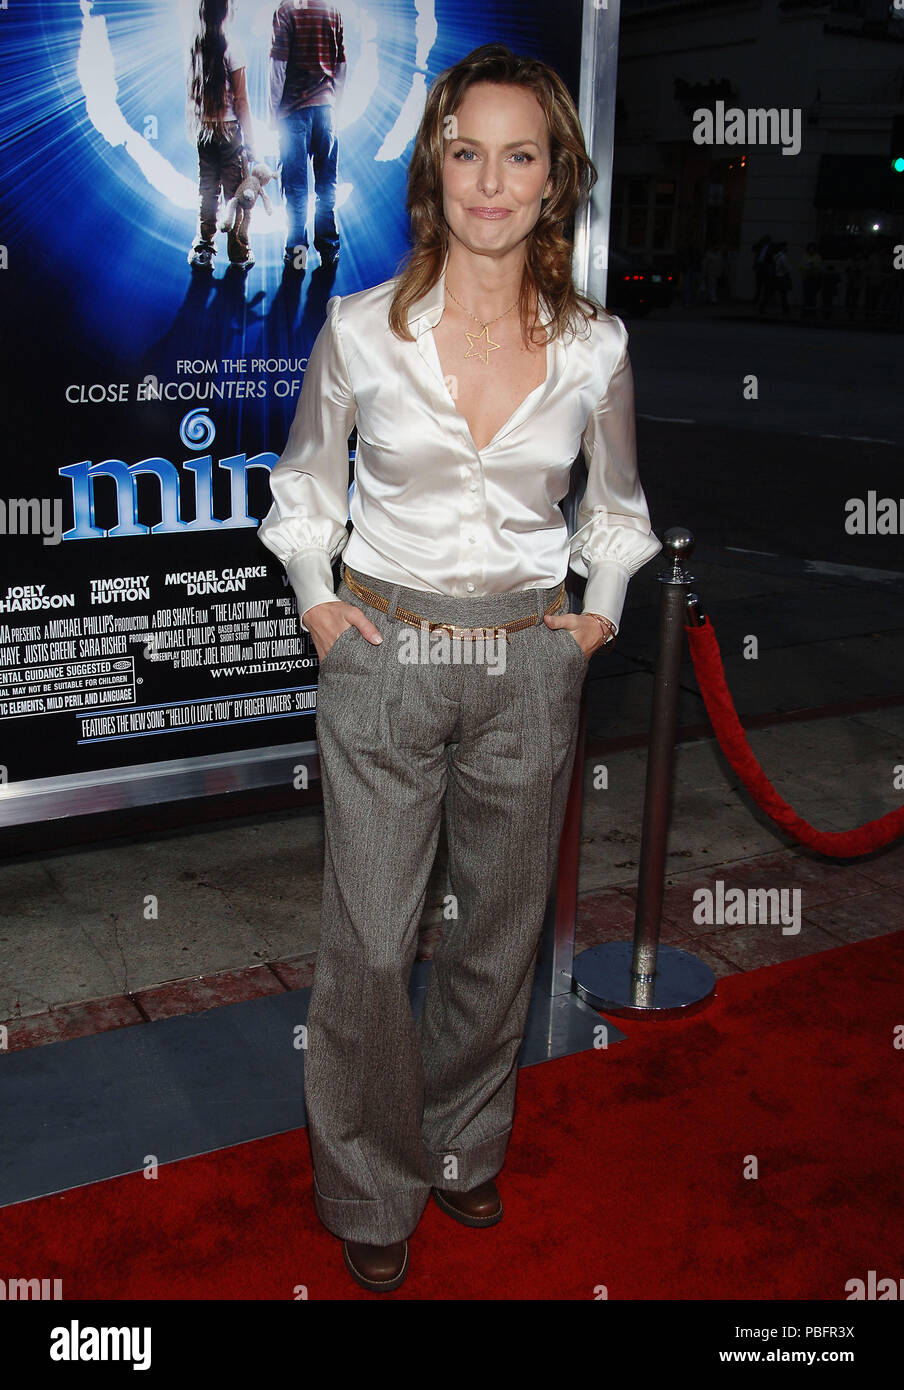 Melora Hardin (The Office ) arriving at the Mimzy Premiere